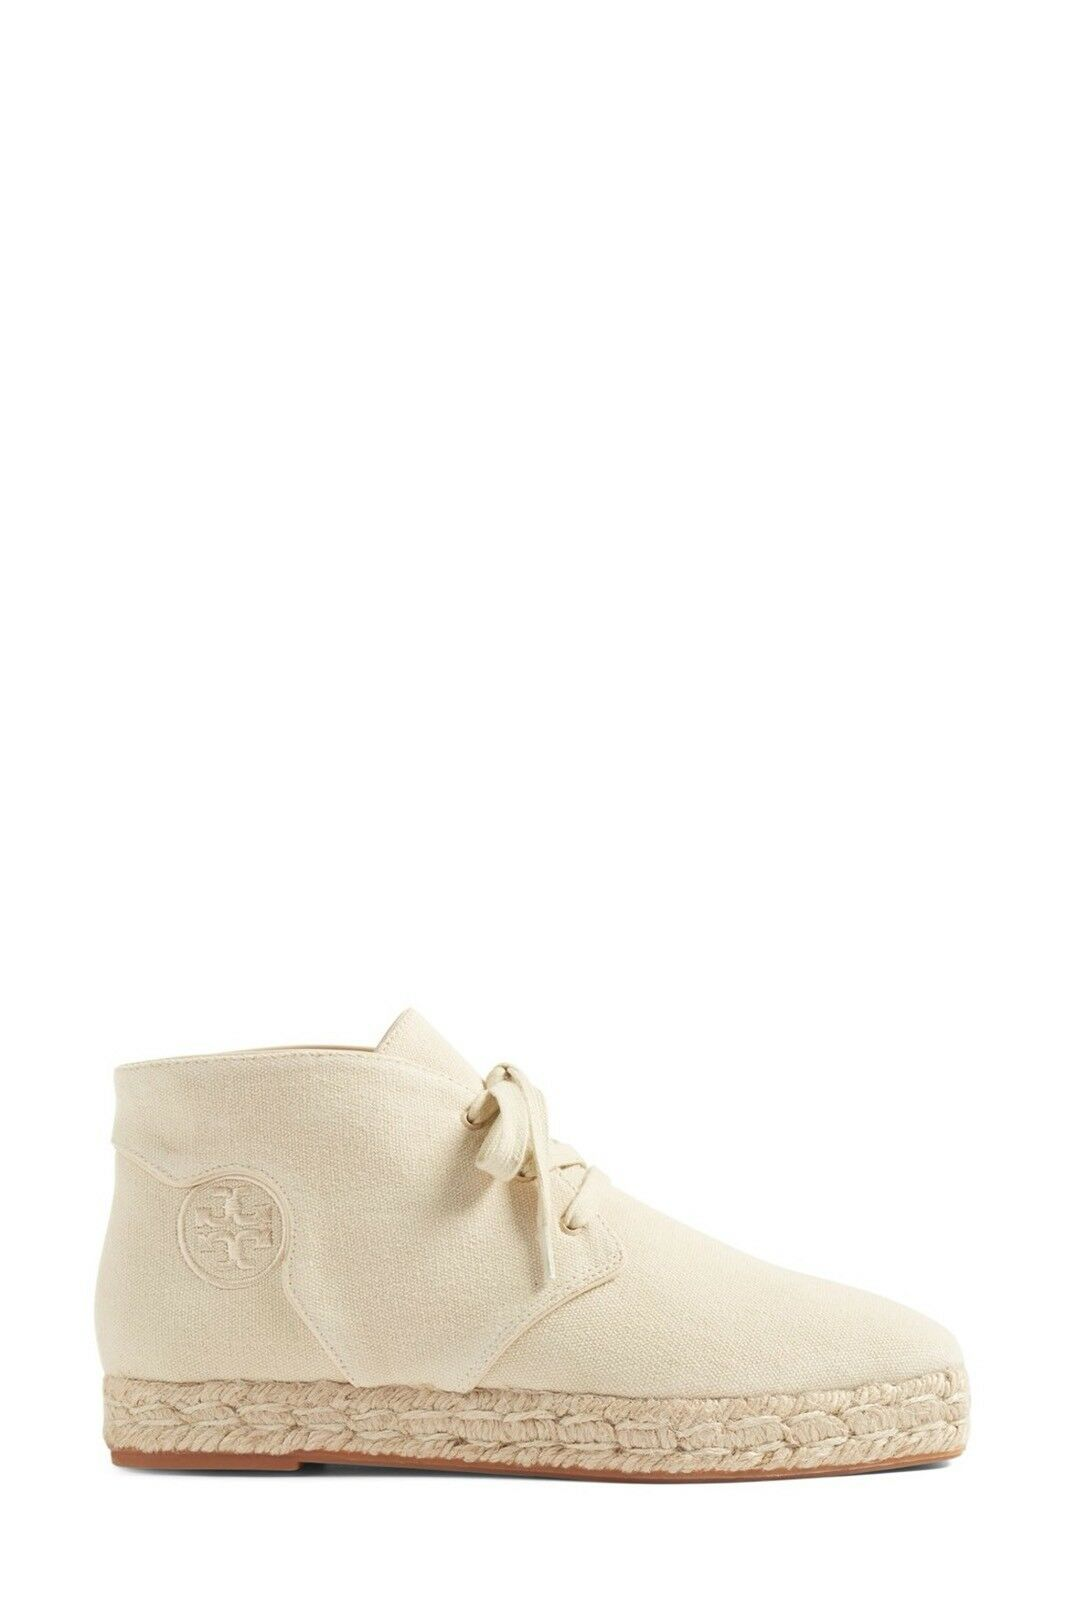 250 NWT Tory Burch Rios Size 7 Lace Up Espadrille Booties Natural Canvas  CREAM